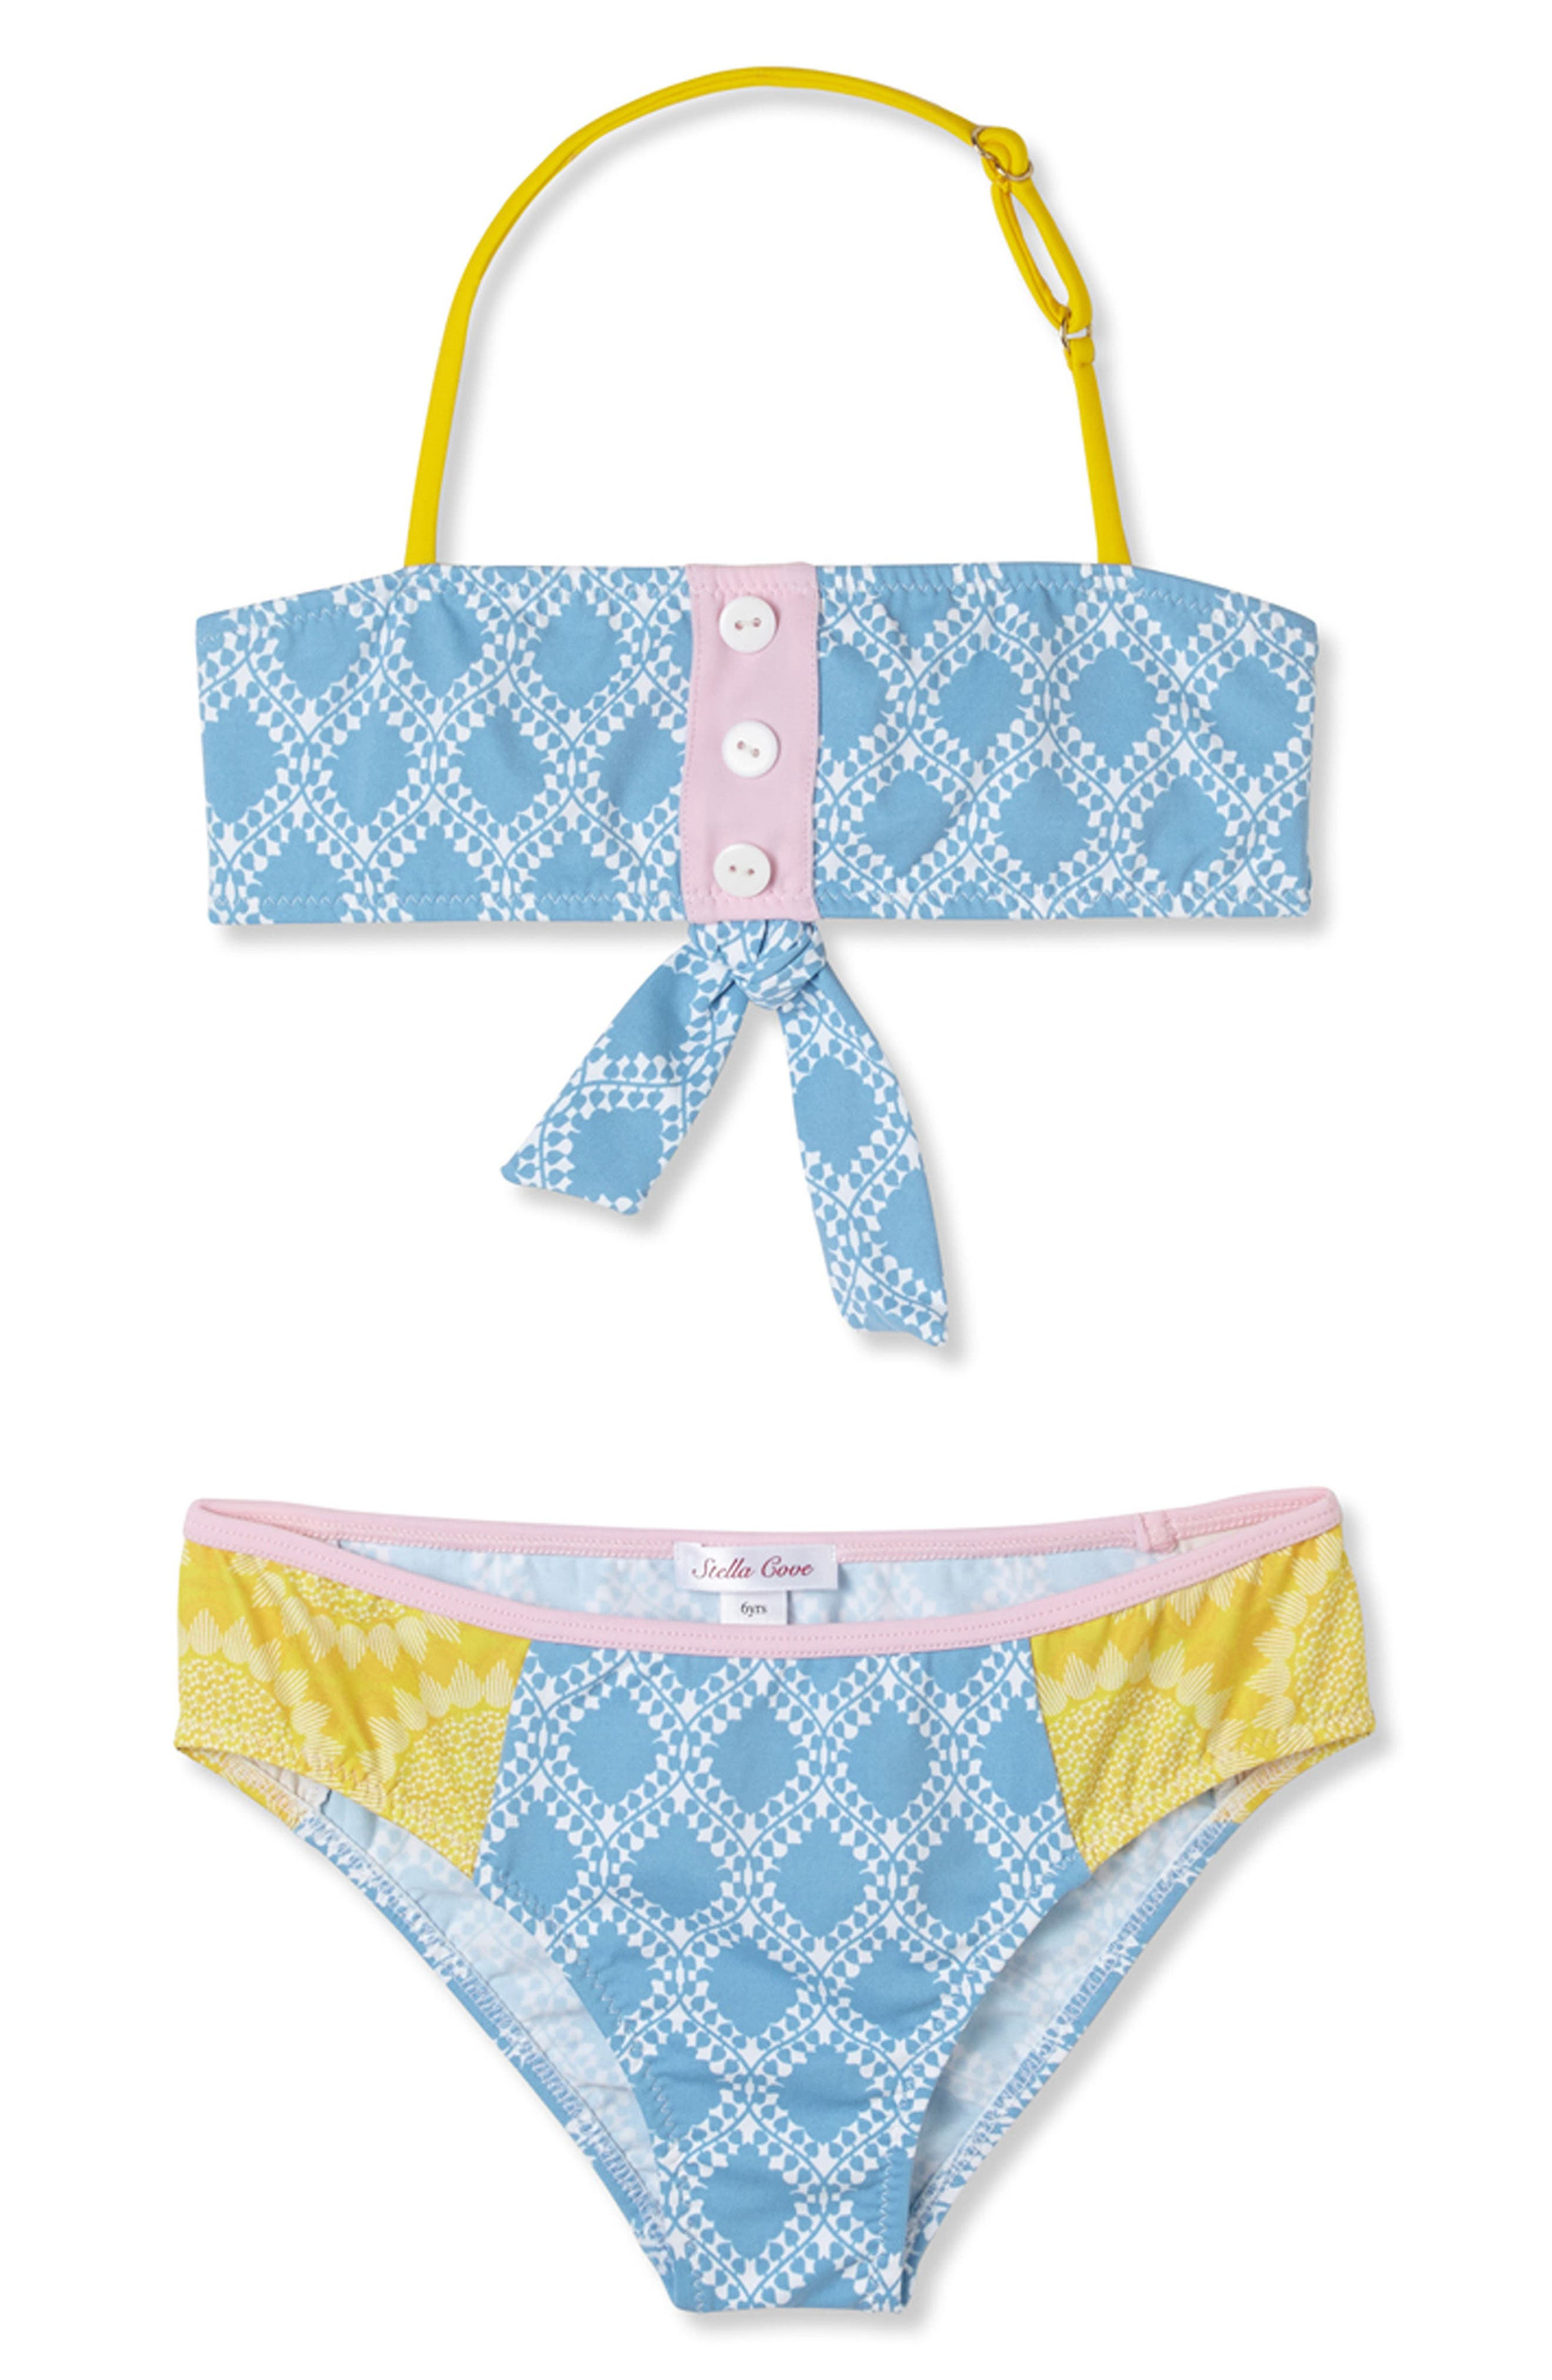 Main Image - Stella Cove Mixed Print Two-Piece Swimsuit (Toddler Girls & Little Girls)